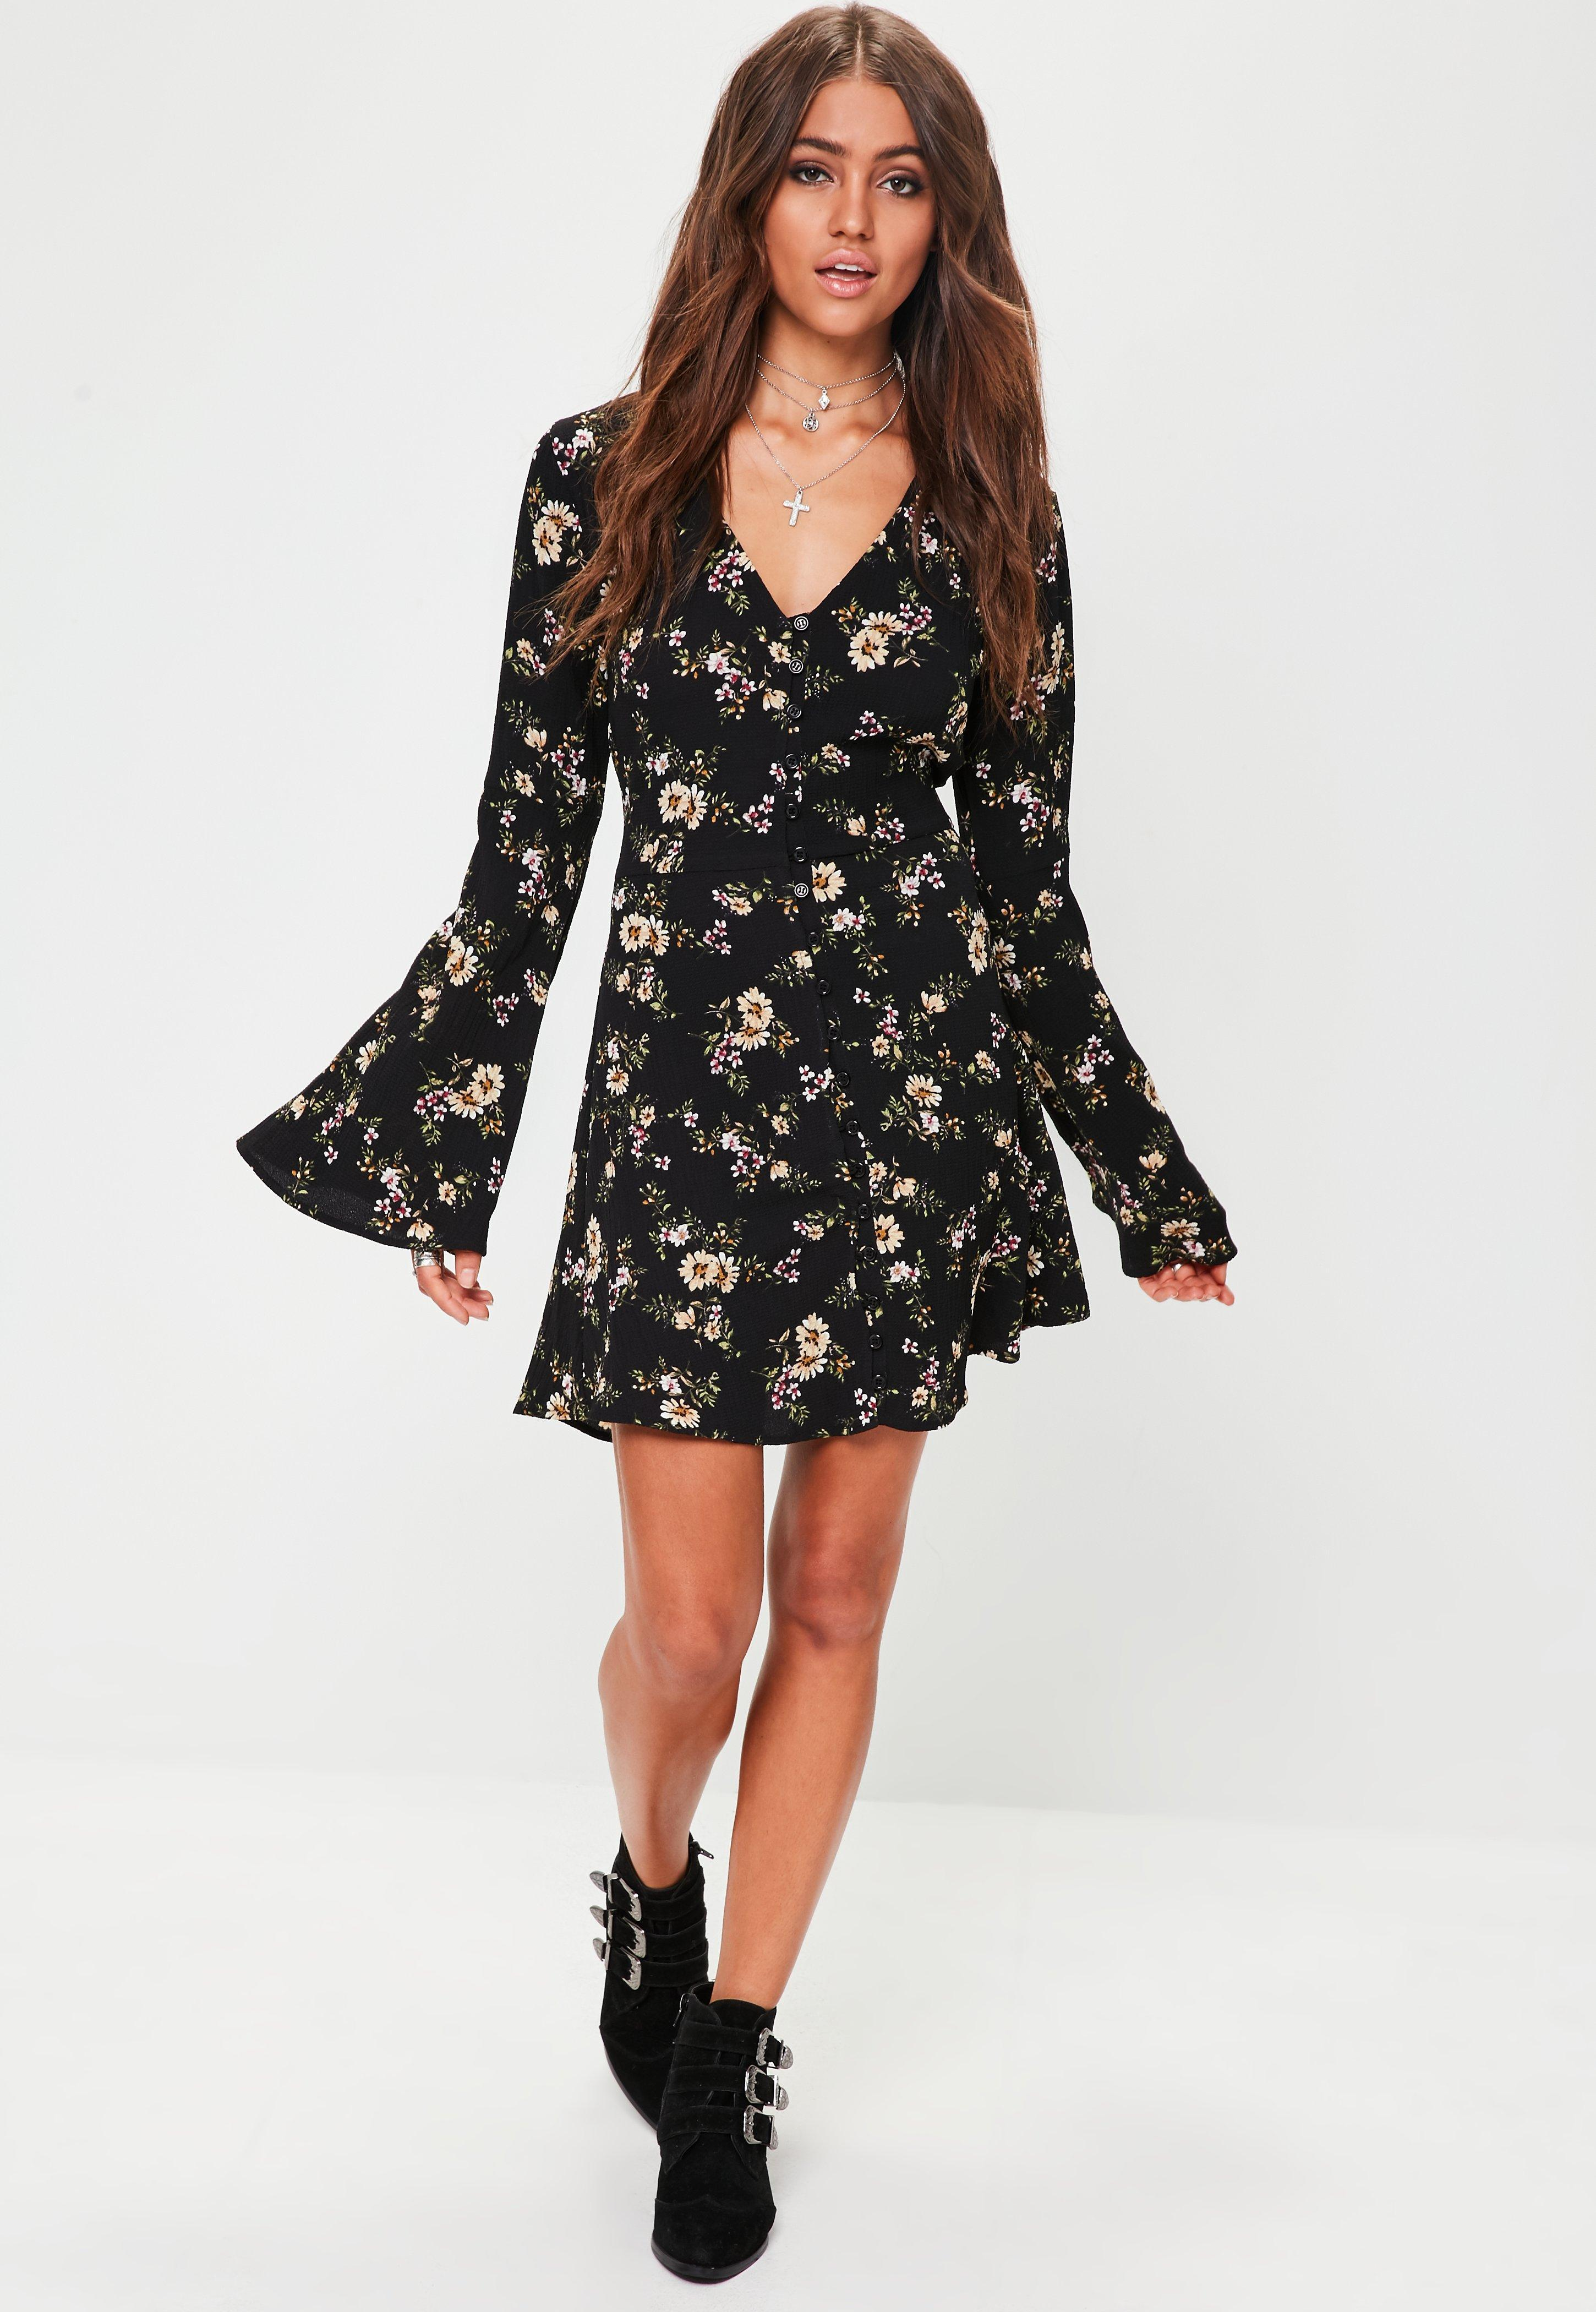 ad0f612fe74f Missguided Floral Print Long Sleeve Skater Dress